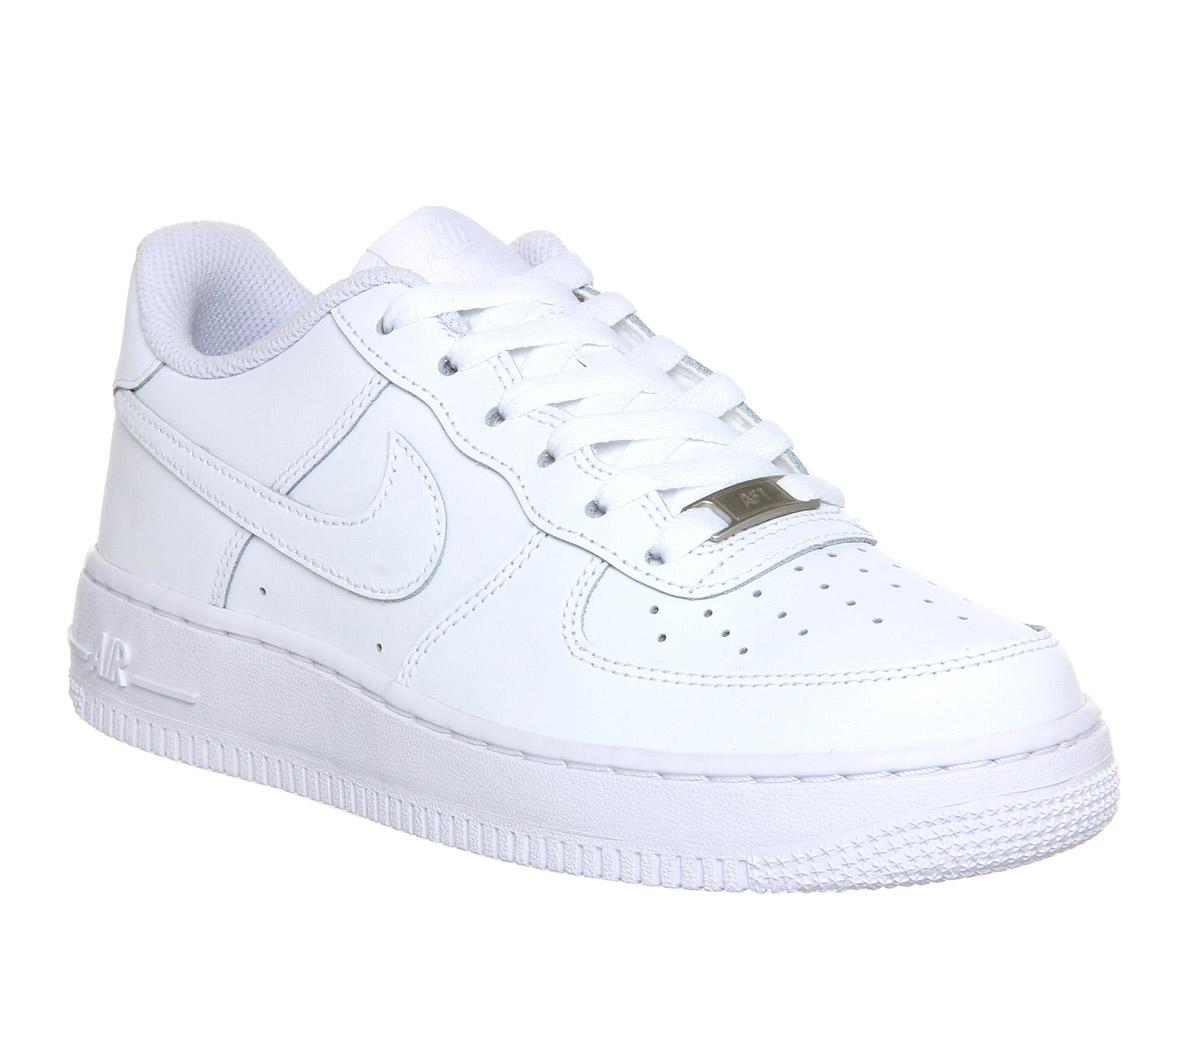 Kids Unisex white & gold nike air force 1 ep trainers | schuh